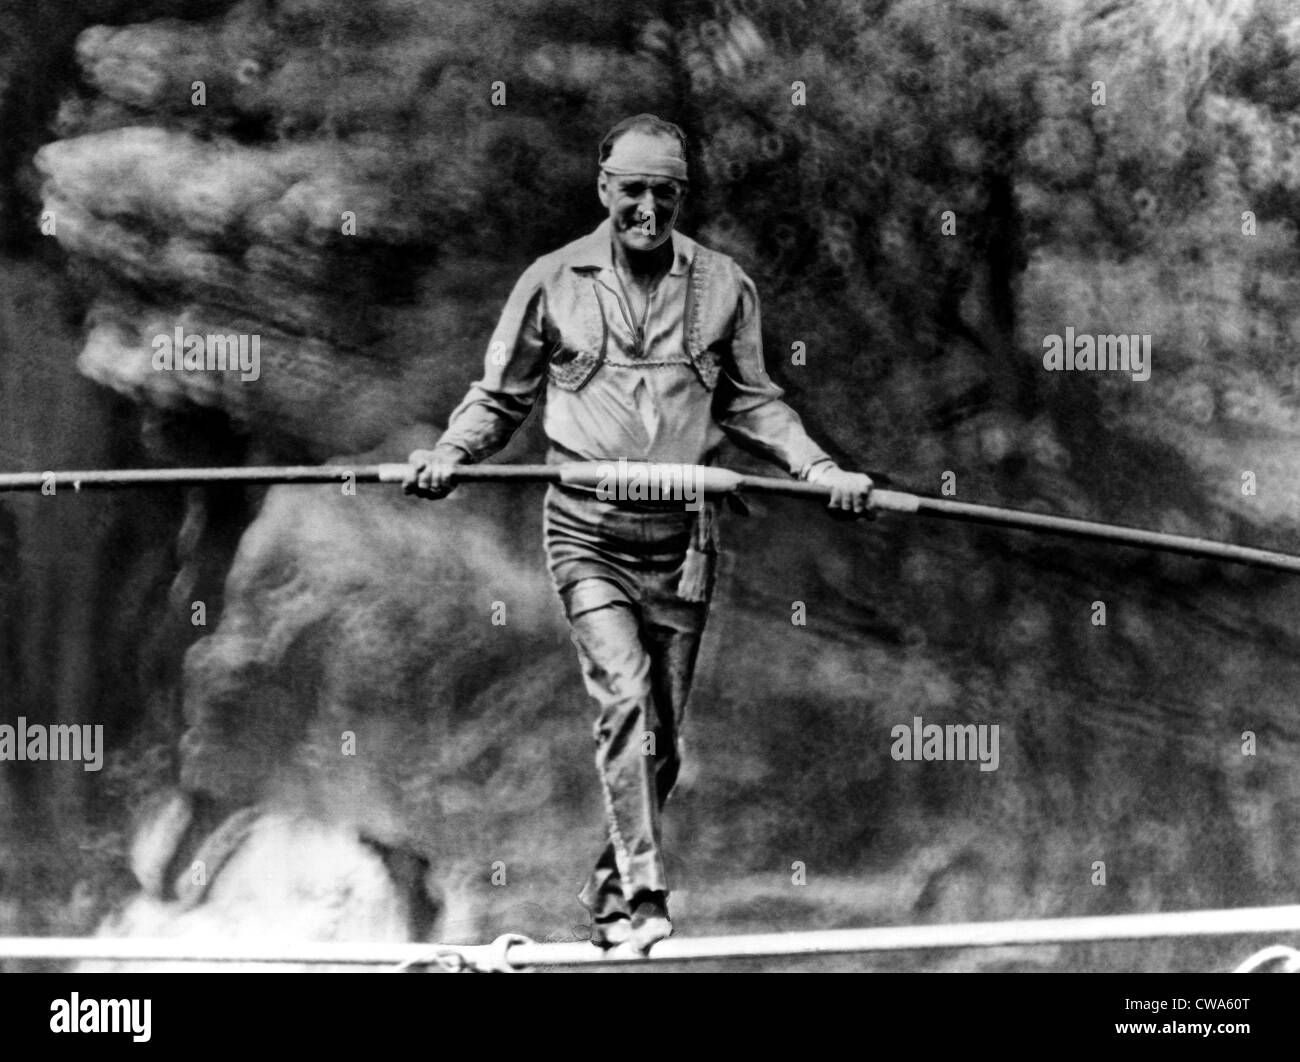 Founder of The Flying Wallendas, Karl Wallenda, (1905-1978),  tightrope walking across the Tallulah Gorge in Georgia, - Stock Image